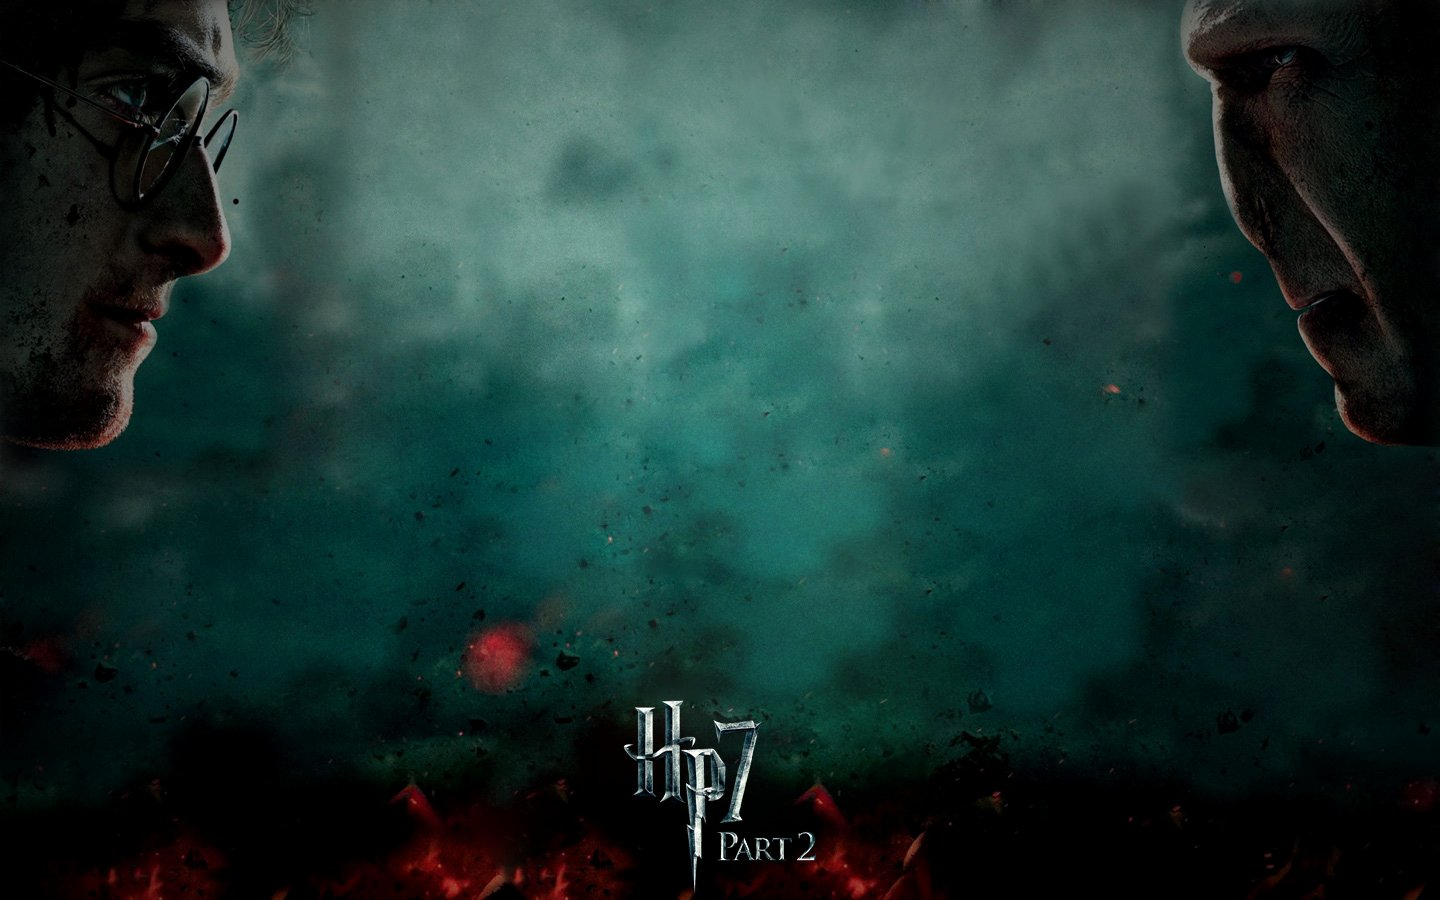 Harry Potter Powerpoint Template Elegant Harry Potter and the Deathly Hallows Part 2 Wallpapers